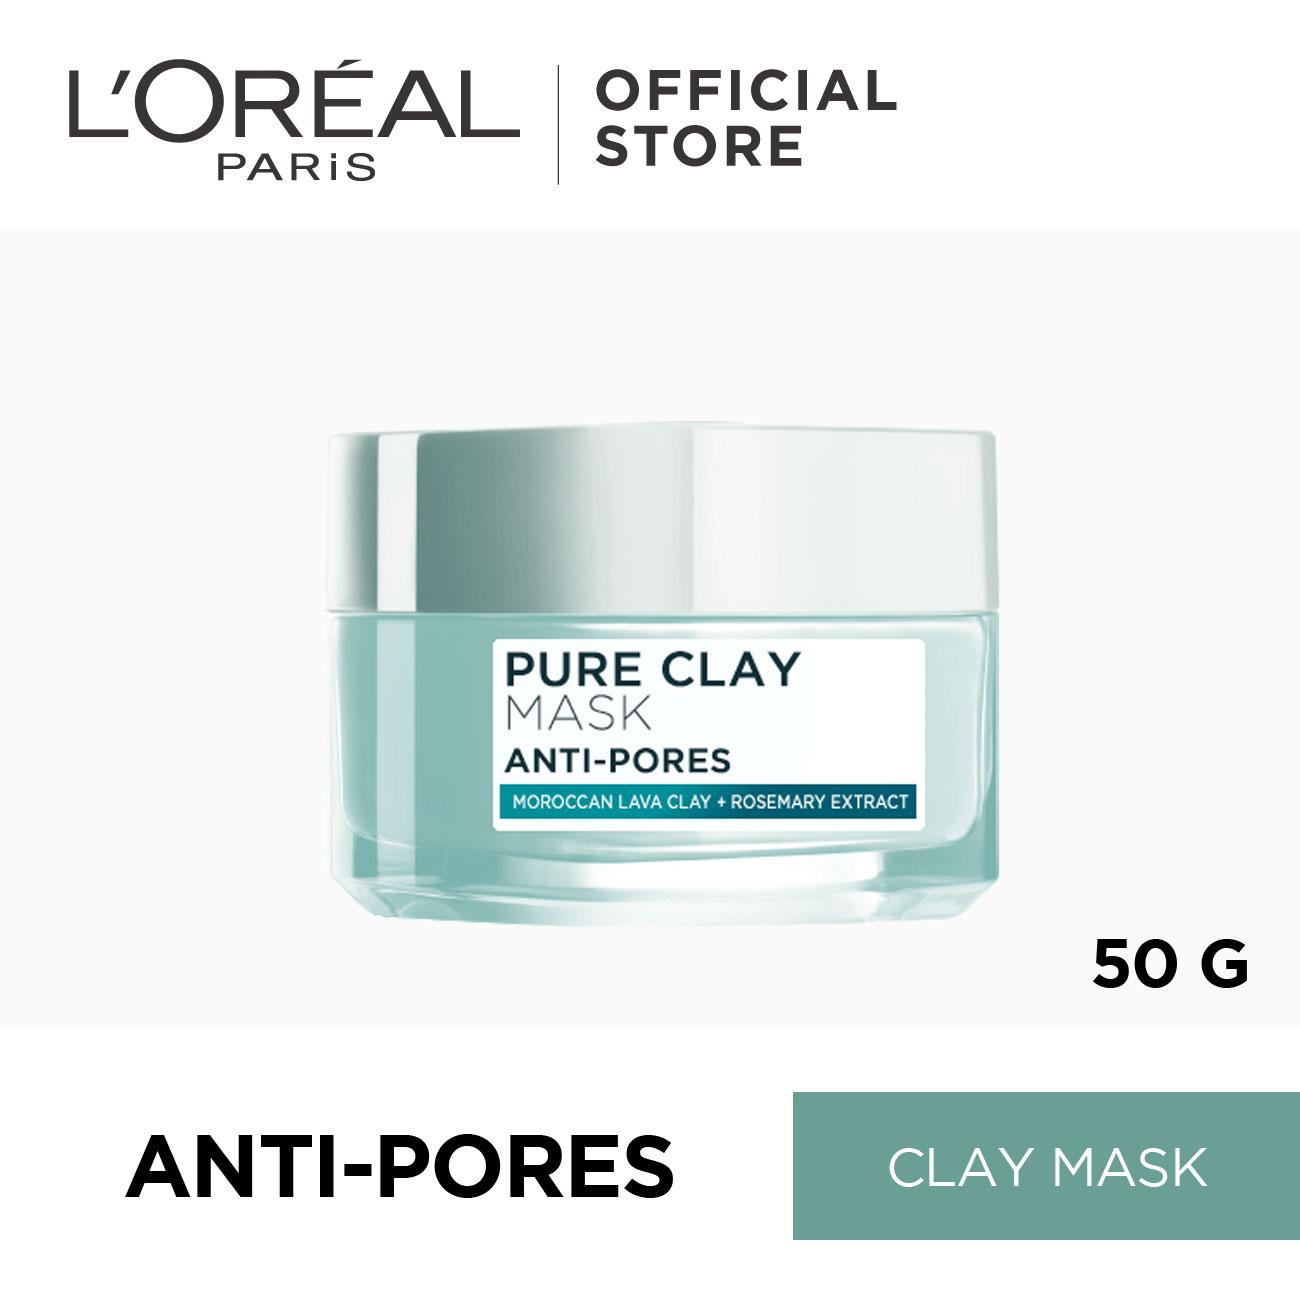 Skincare Mask Brands Skin Face Packs On Sale Prices Set Rorec Natural Care Pomegranate Loreal Paris Pure Clay Anti Pores Mint Green 50ml